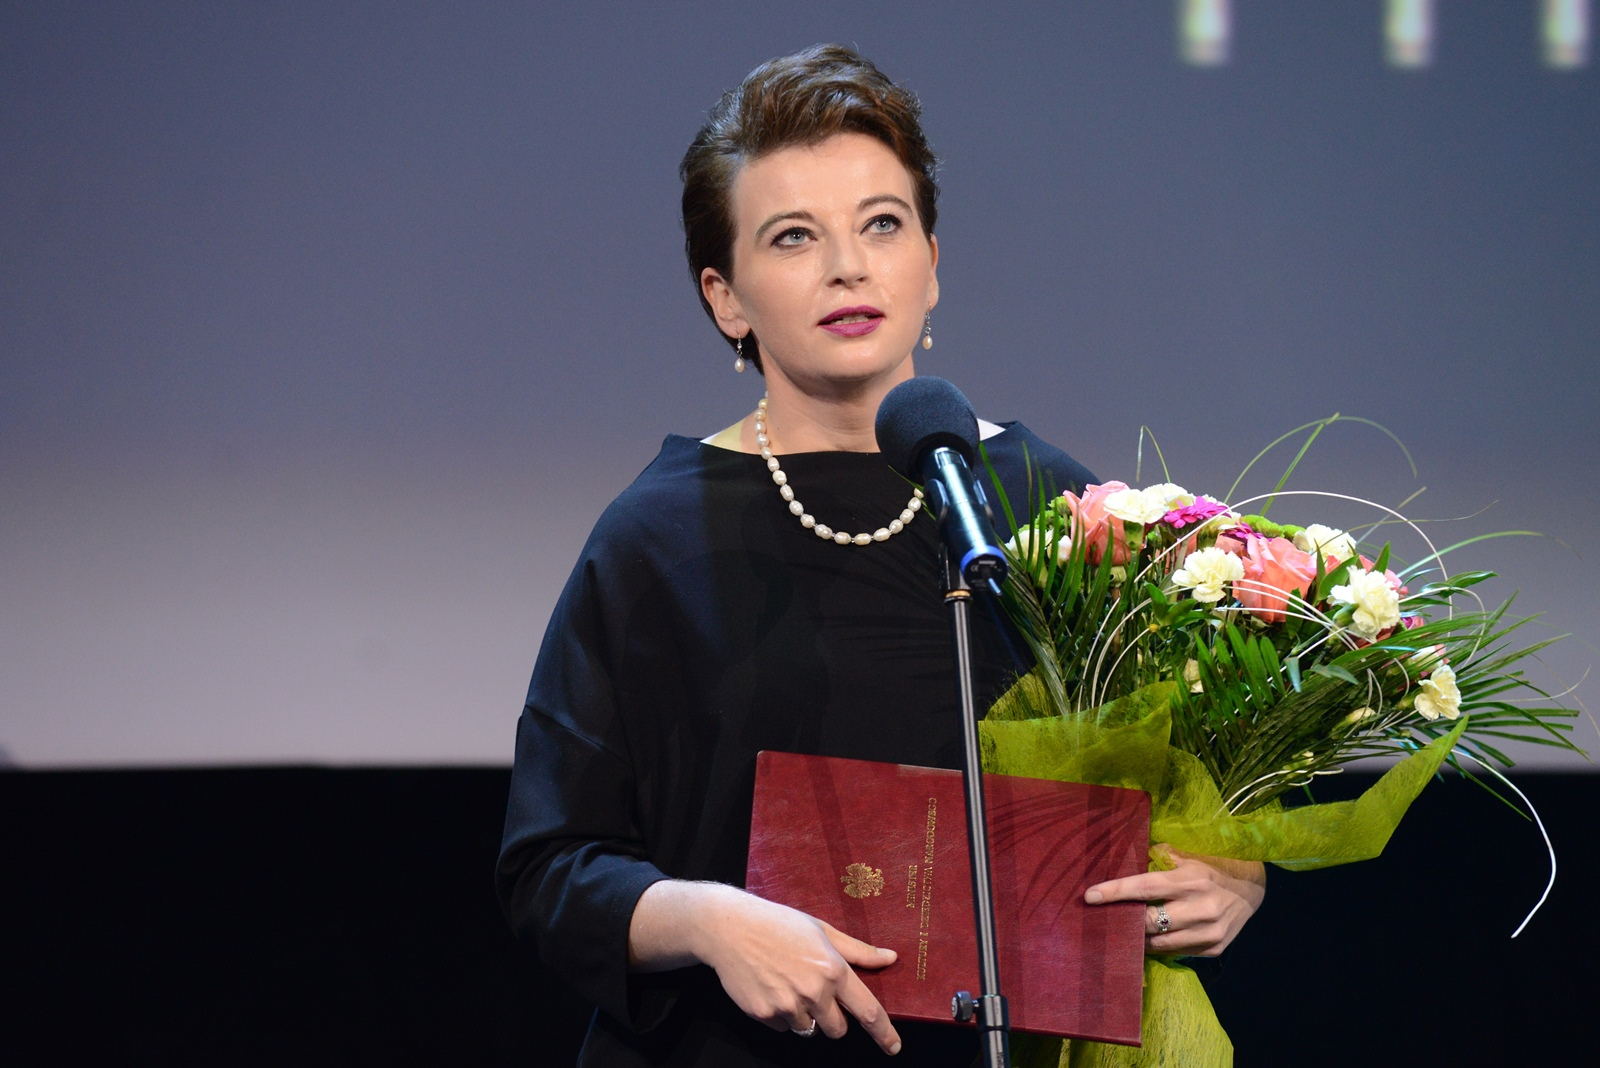 MAGDALENA SROKA IS THE NEW GENERAL DIRECTOR OF THE POLISH FILM INSTITUTE